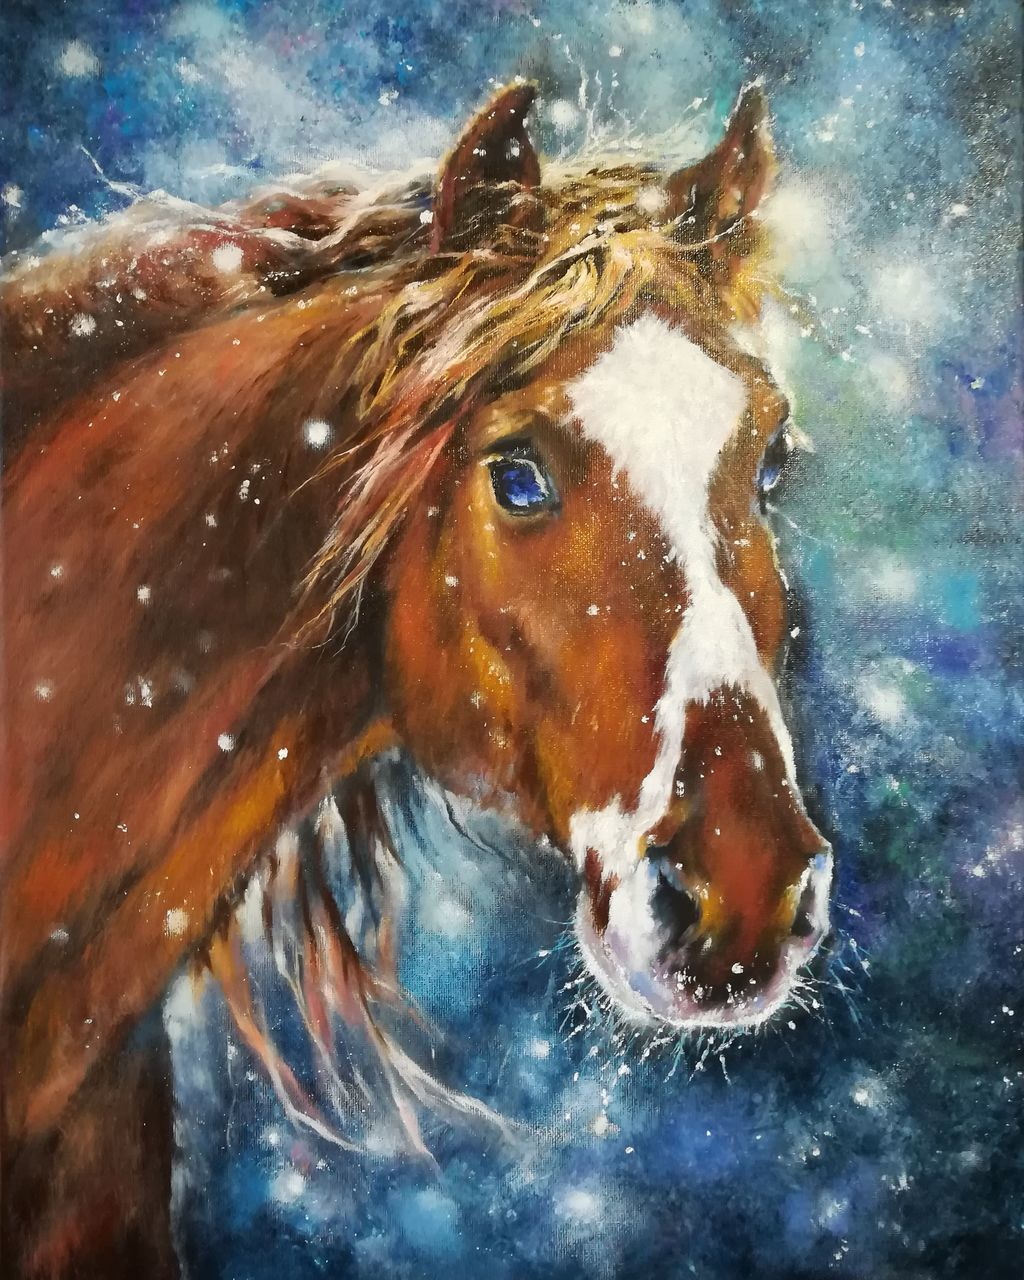 CLOSE-UP OF A HORSE IN WINTER